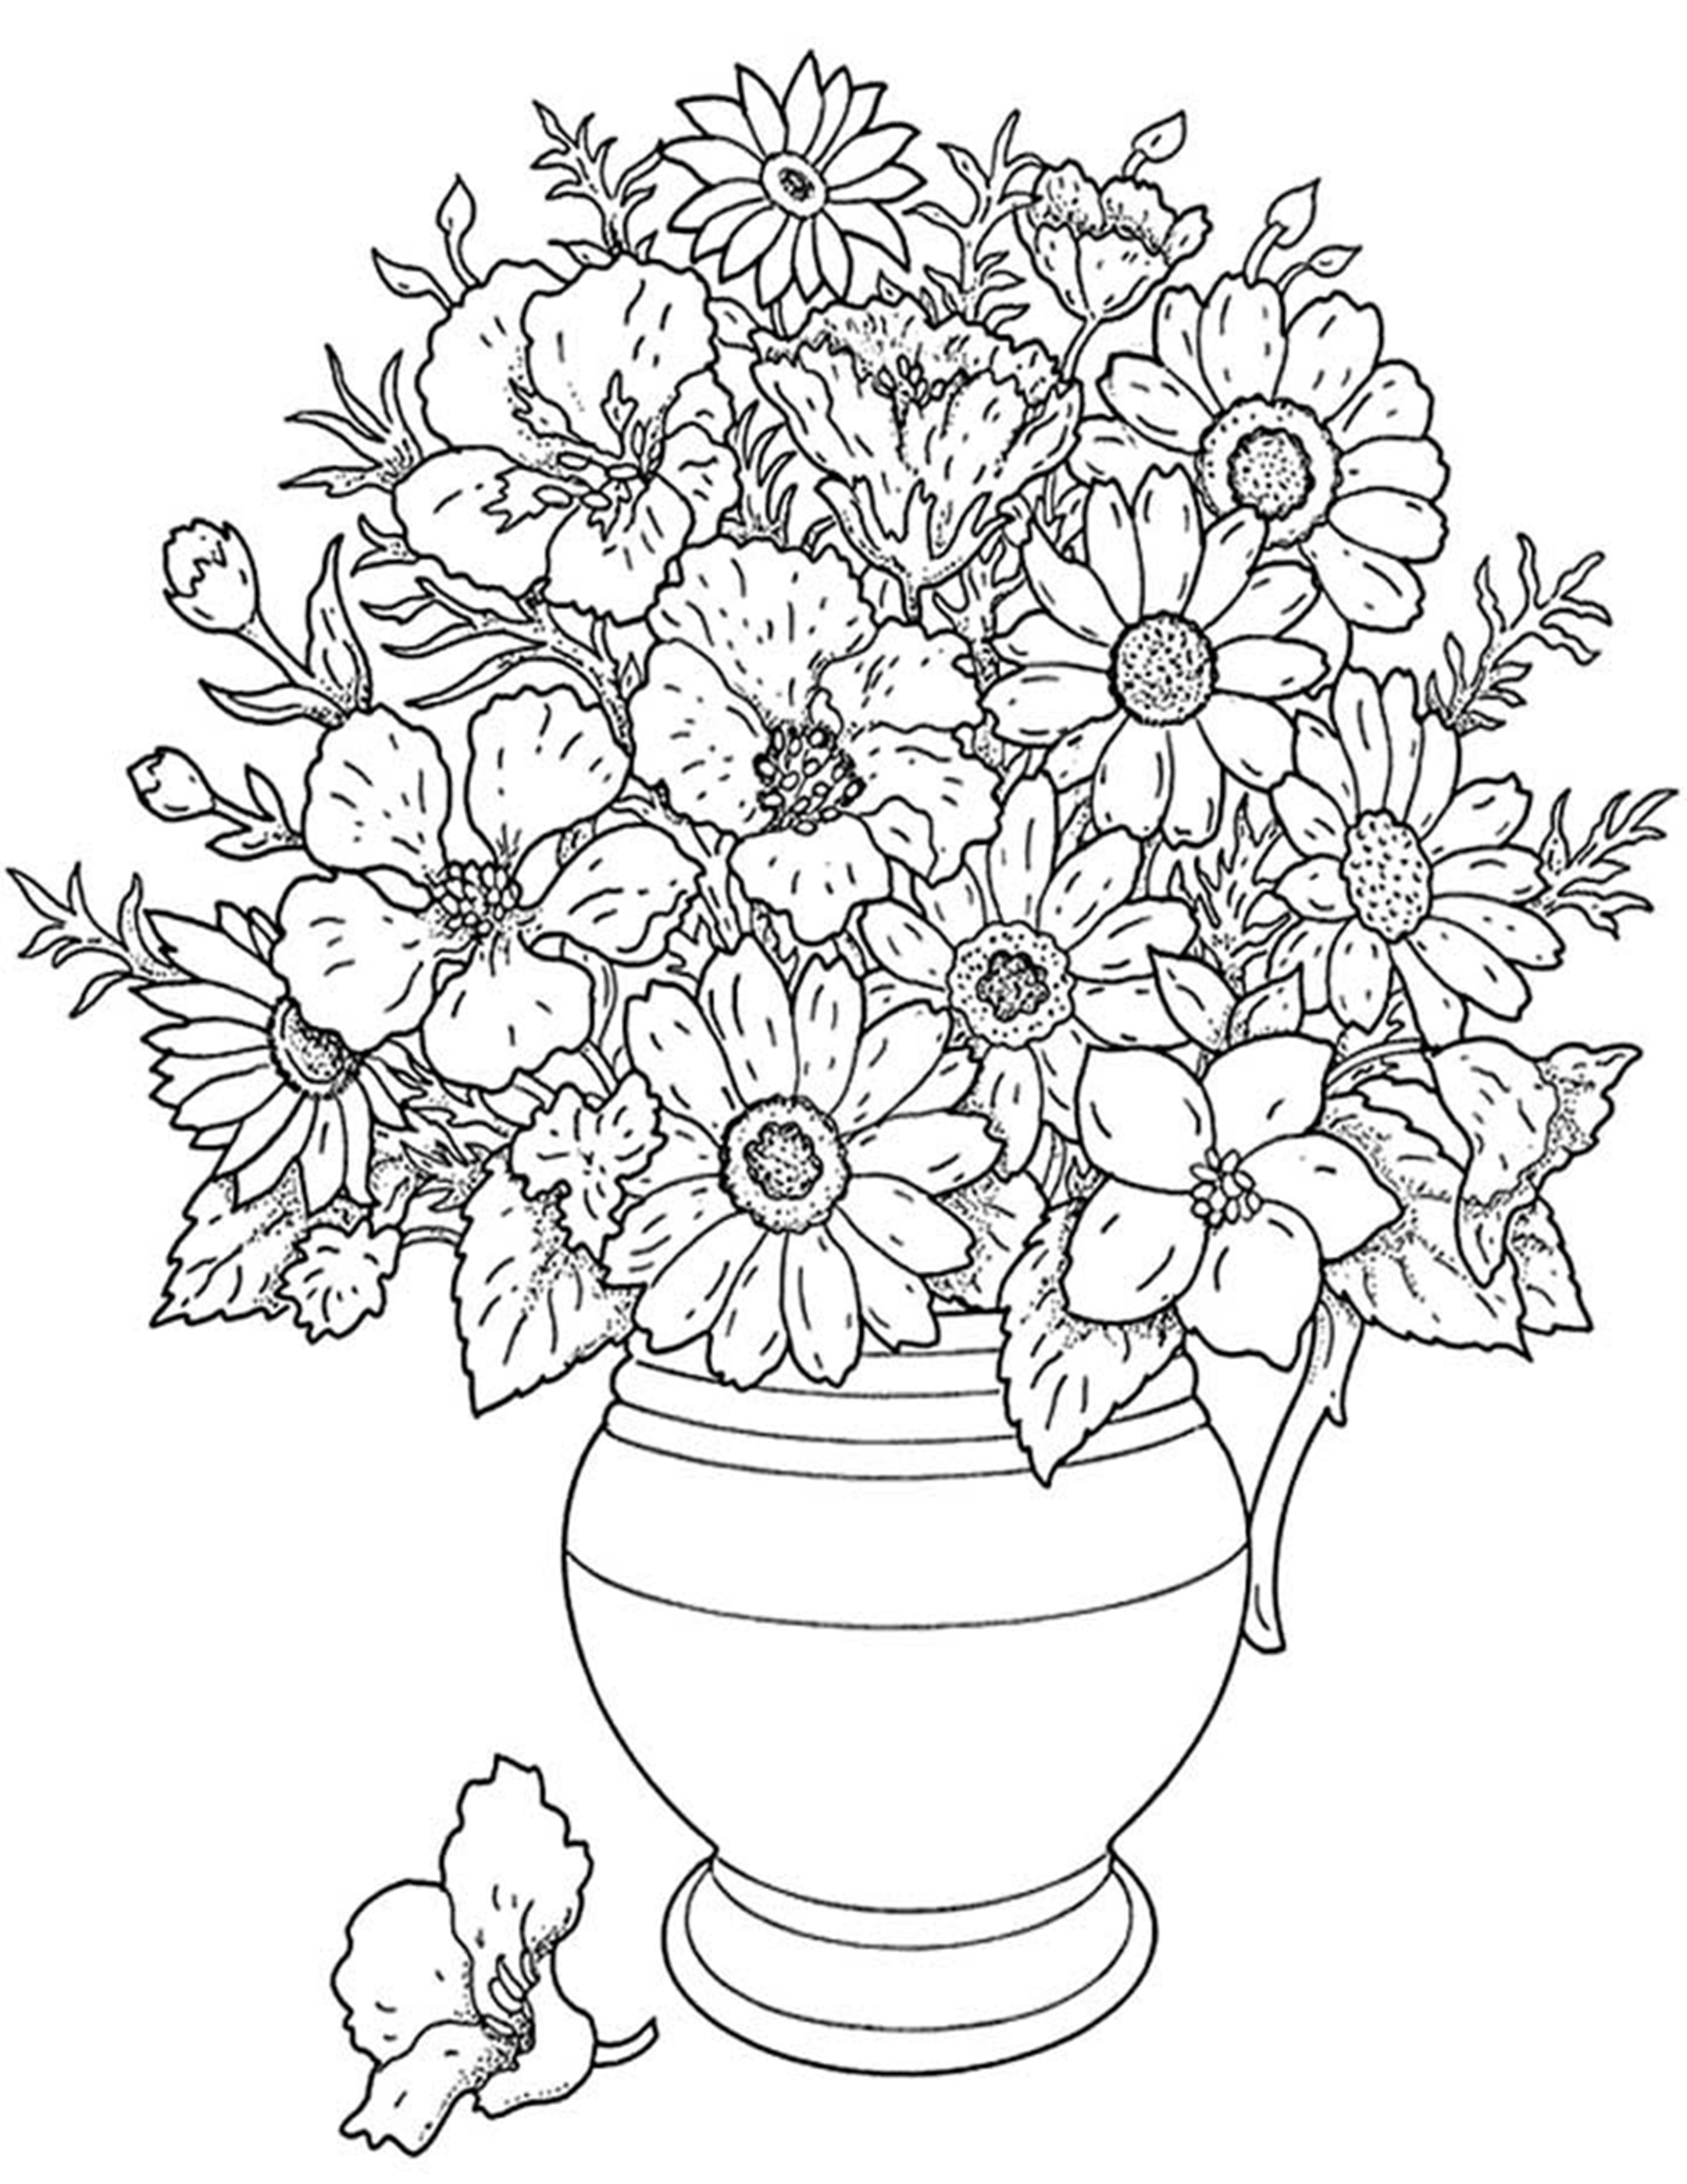 images of flowers to color realistic flower coloring pages divyajananiorg of images to flowers color